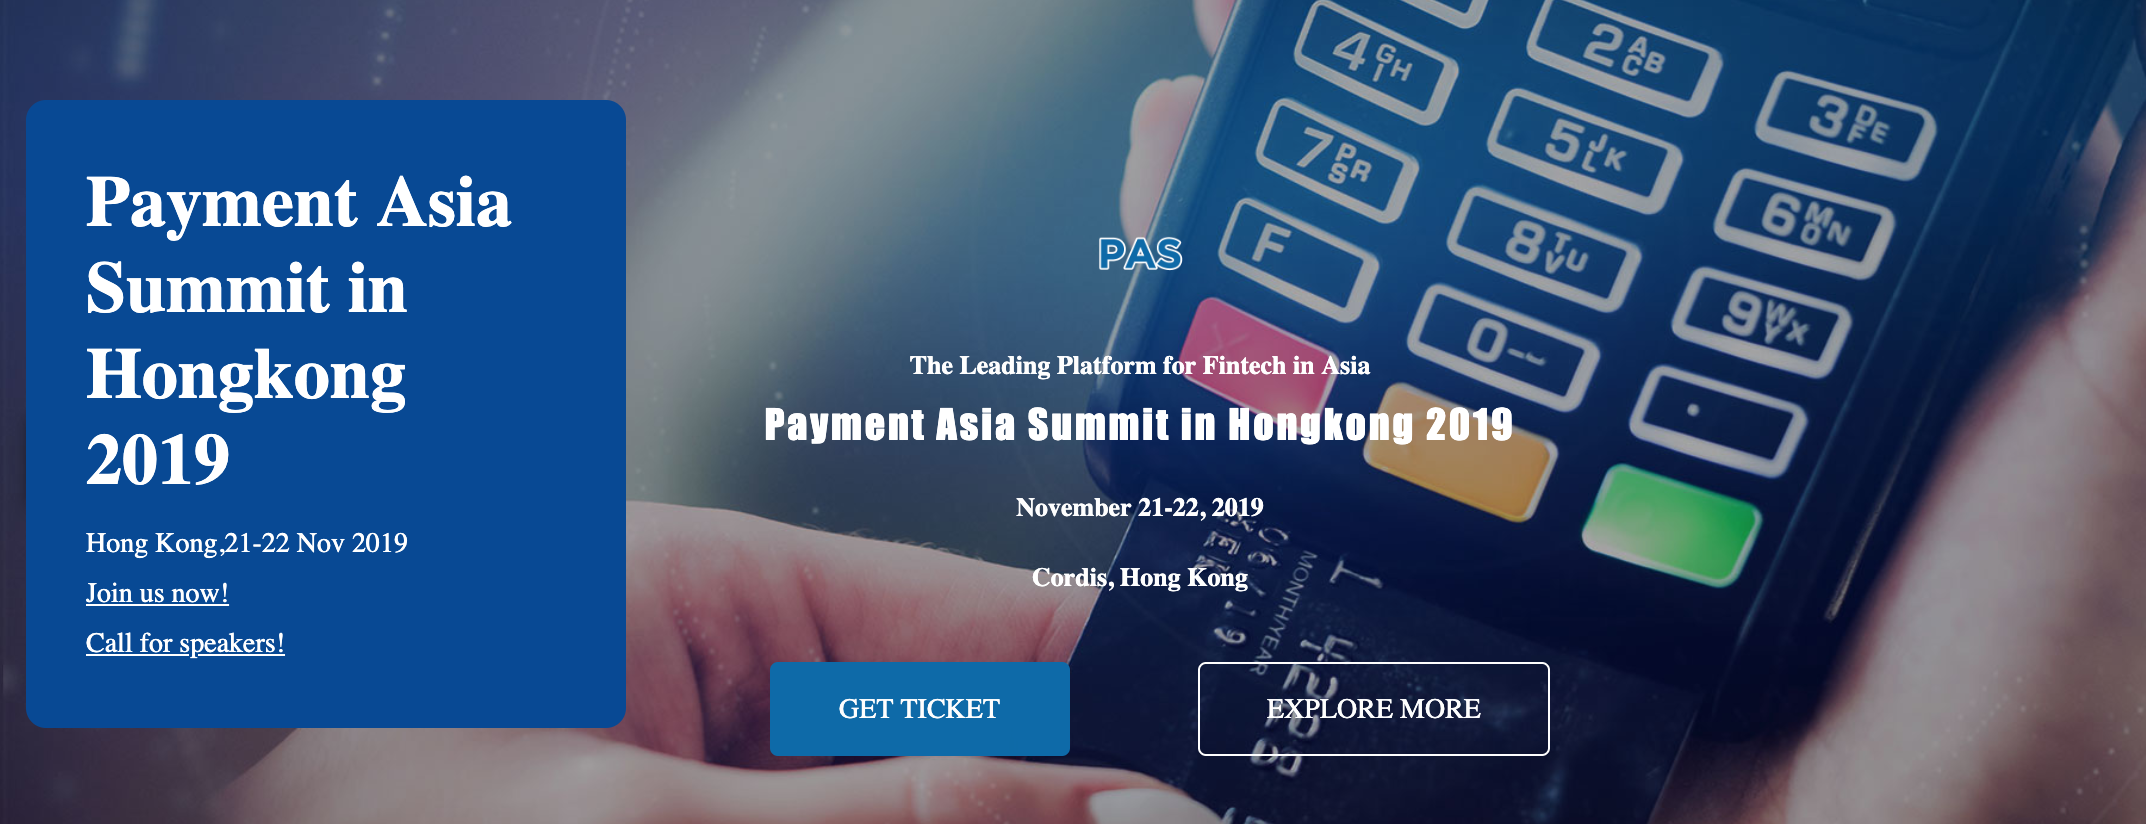 Payment Asia Summit in Hong Kong 2019